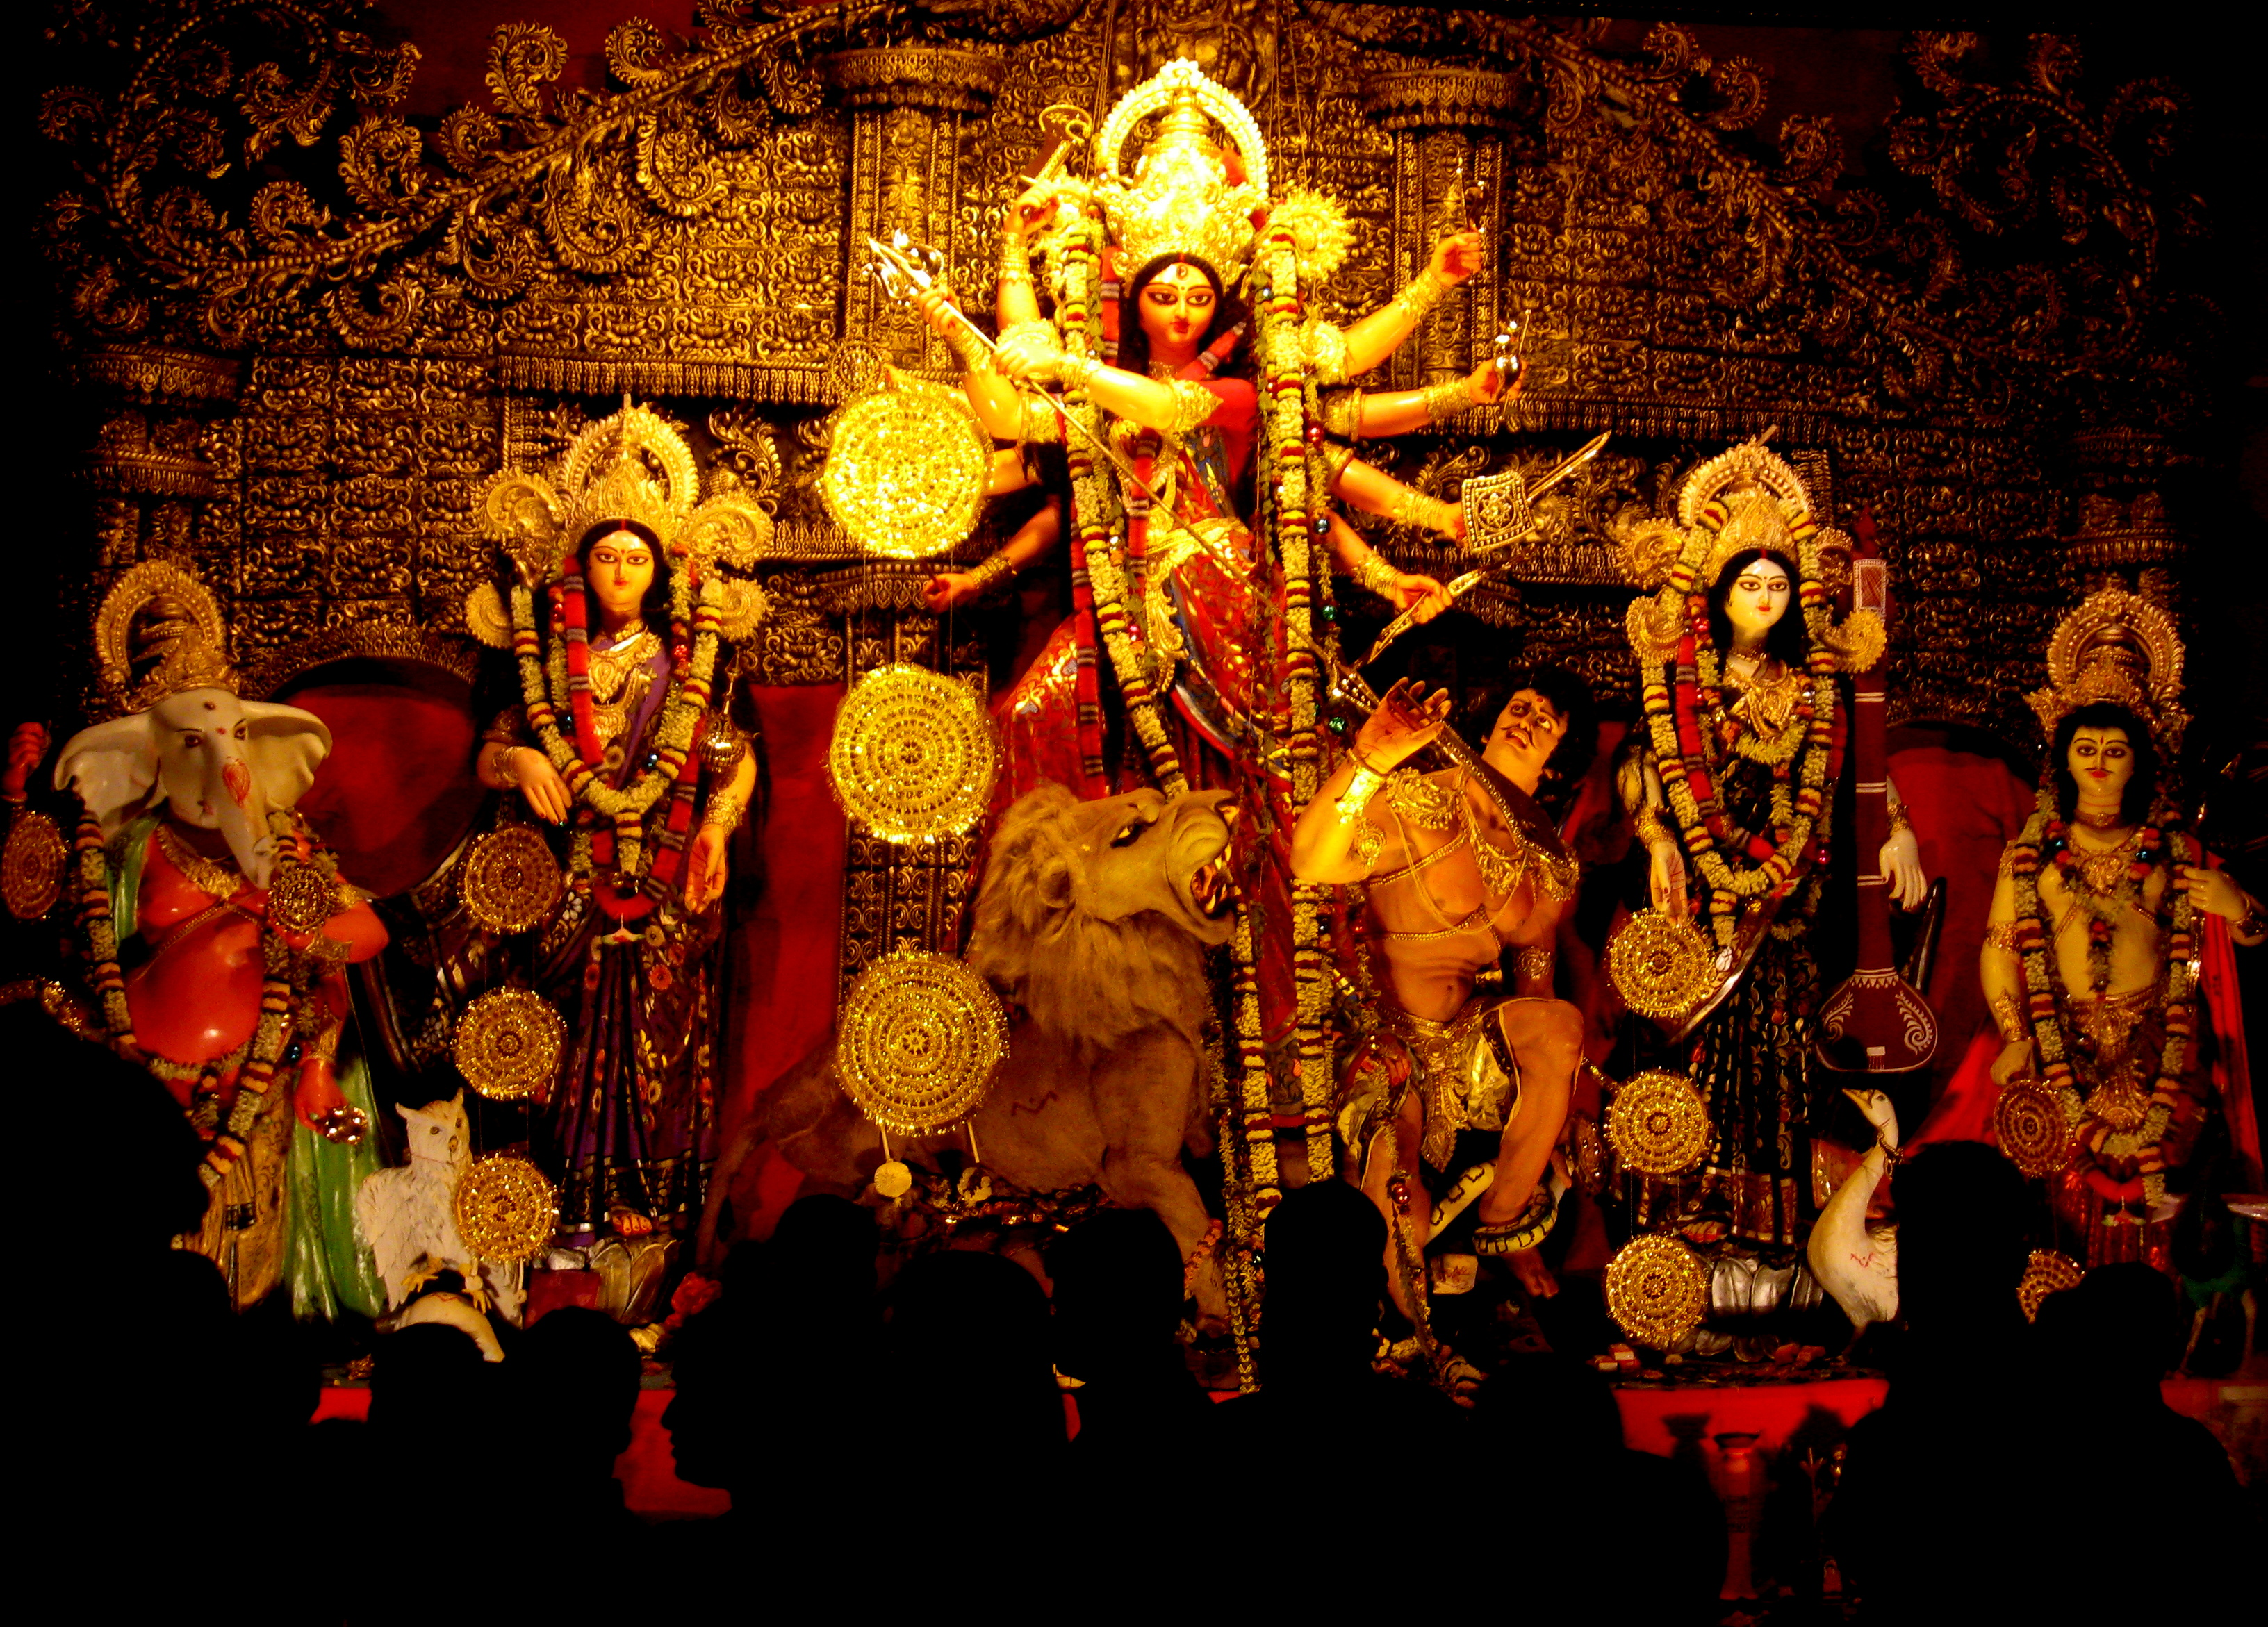 An idol of Goddess Durga.